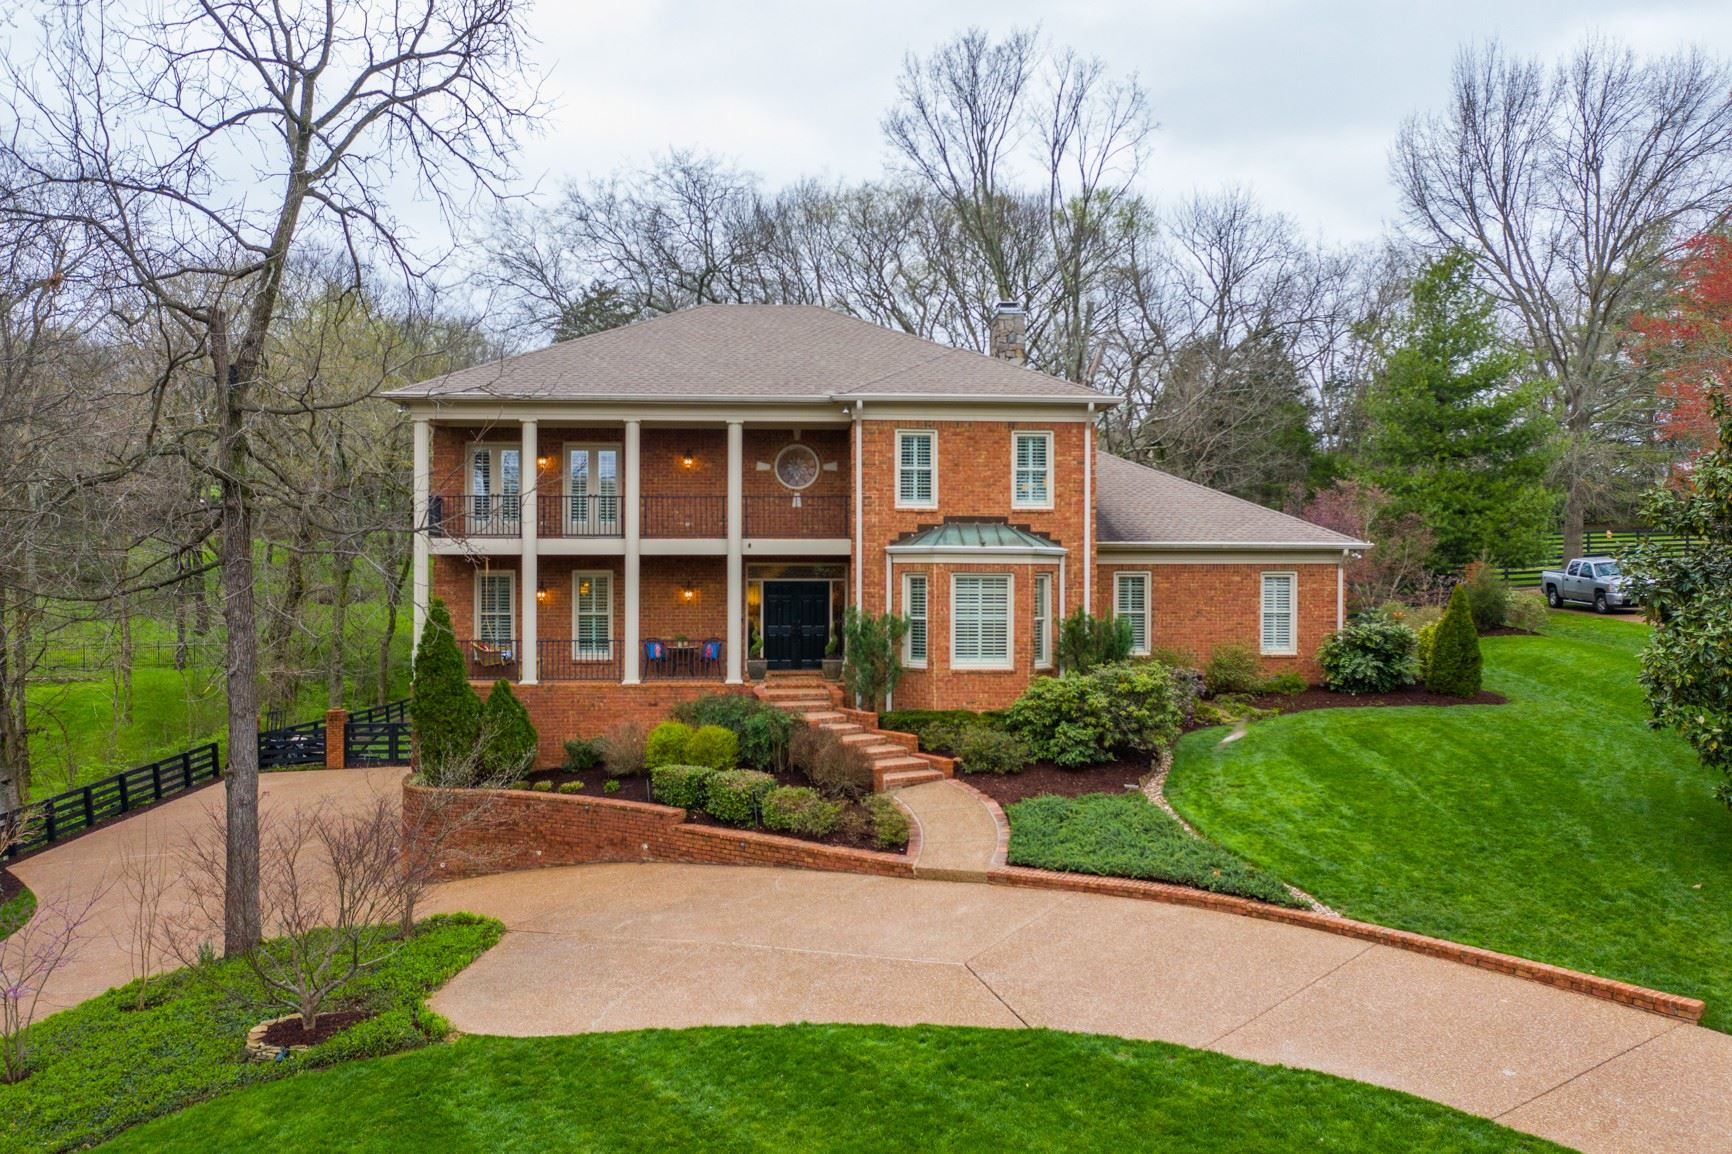 Photo of 1116 Brookview Dr, Brentwood, TN 37027 (MLS # 2135124)